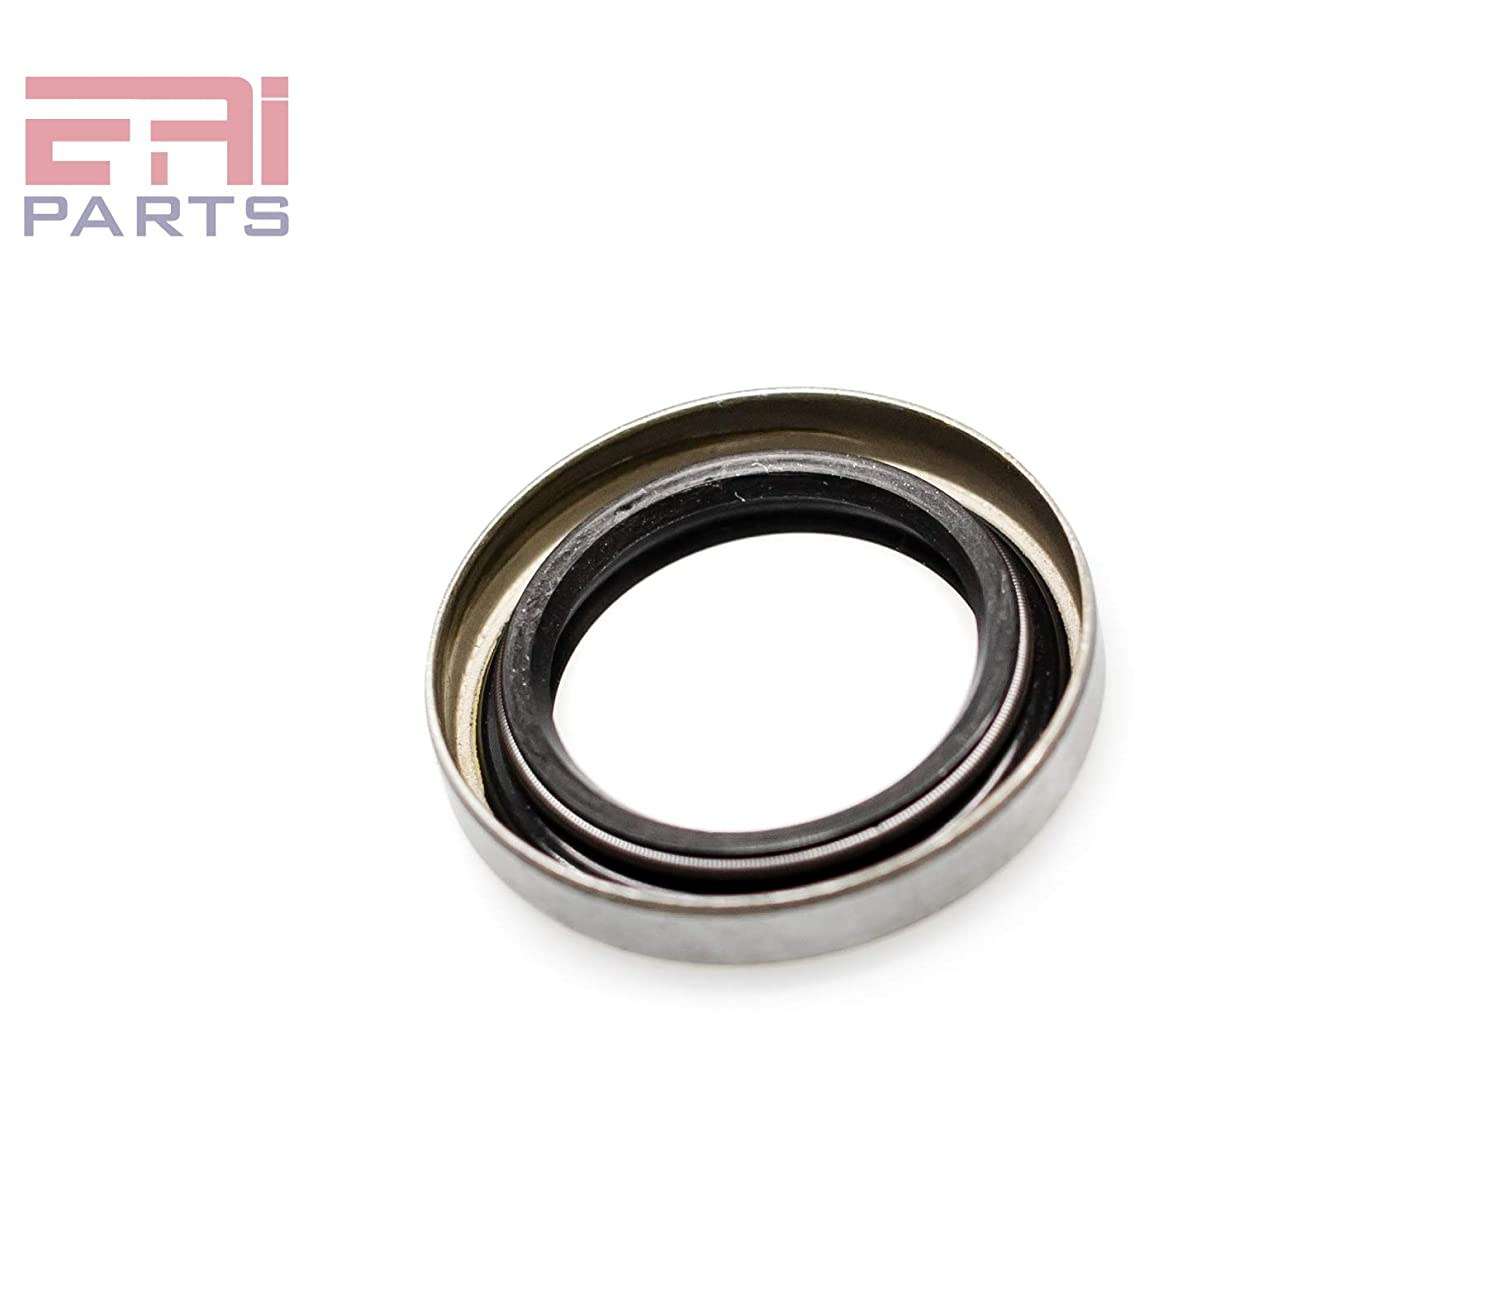 Oil Seal 1.000x1.500x0.250 Oil Seal Grease Seal TB 1x1 1//2x1//4 EAI Metal Case with Inner Coated Rubber with Spring